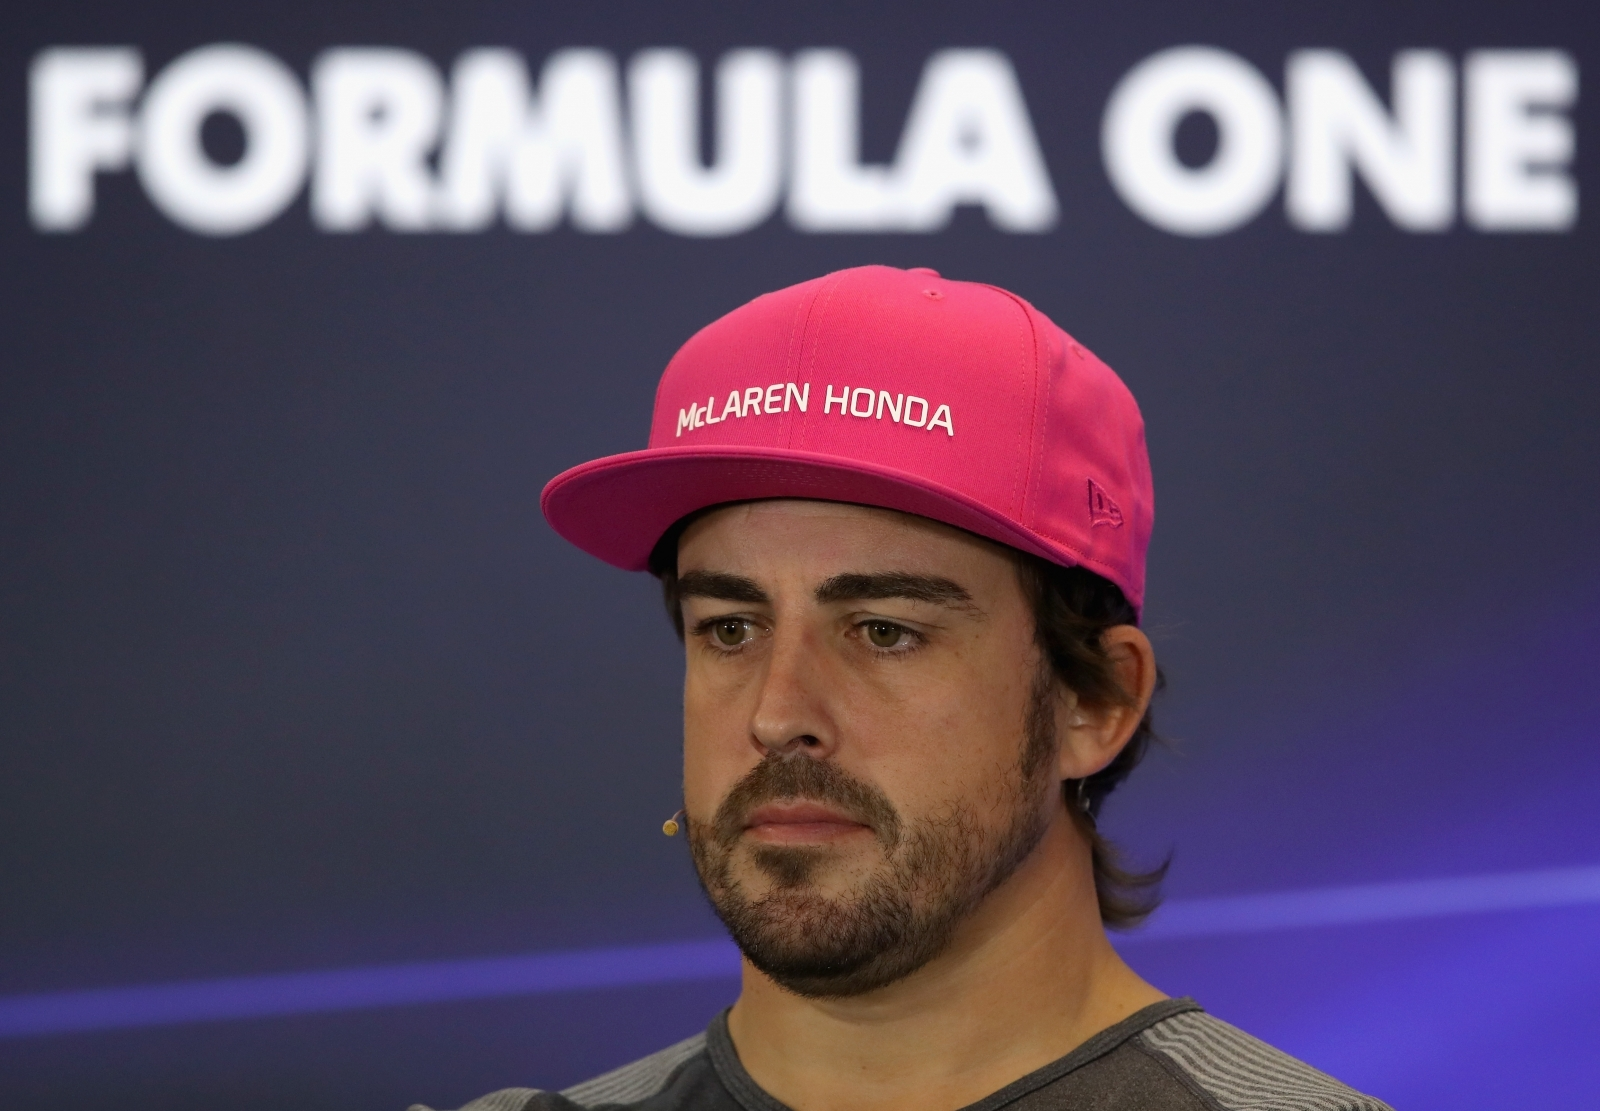 Fernando Alonso Signs New McLaren Contract for 2018